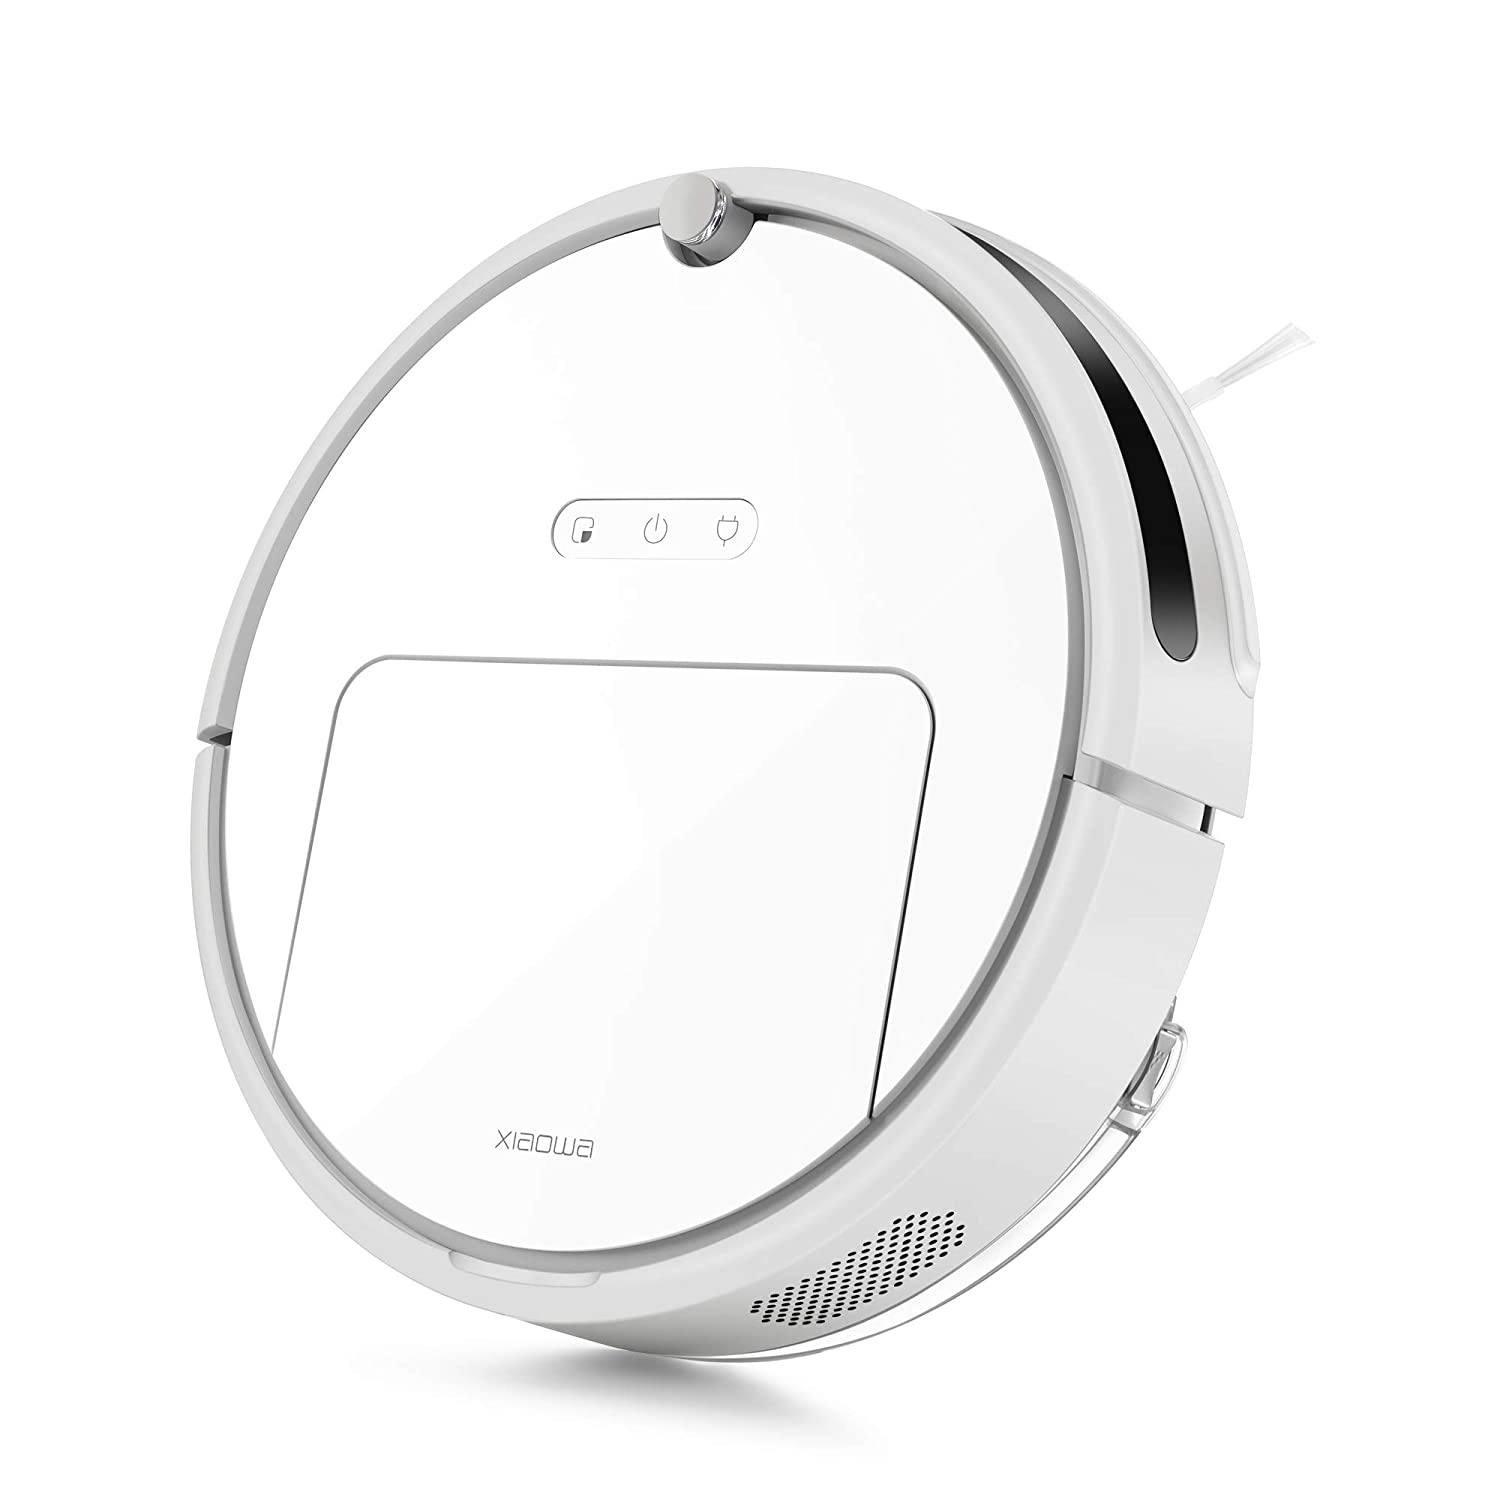 Roborock E20 Robot Vacuum Cleaner Sweeping and Mopping Robotic Vacuum Cleaning Dust and Pet Hair, 1800Pa Strong Suction and App Control, Route Planning on Hard Floor, Carpet and All Floor Types